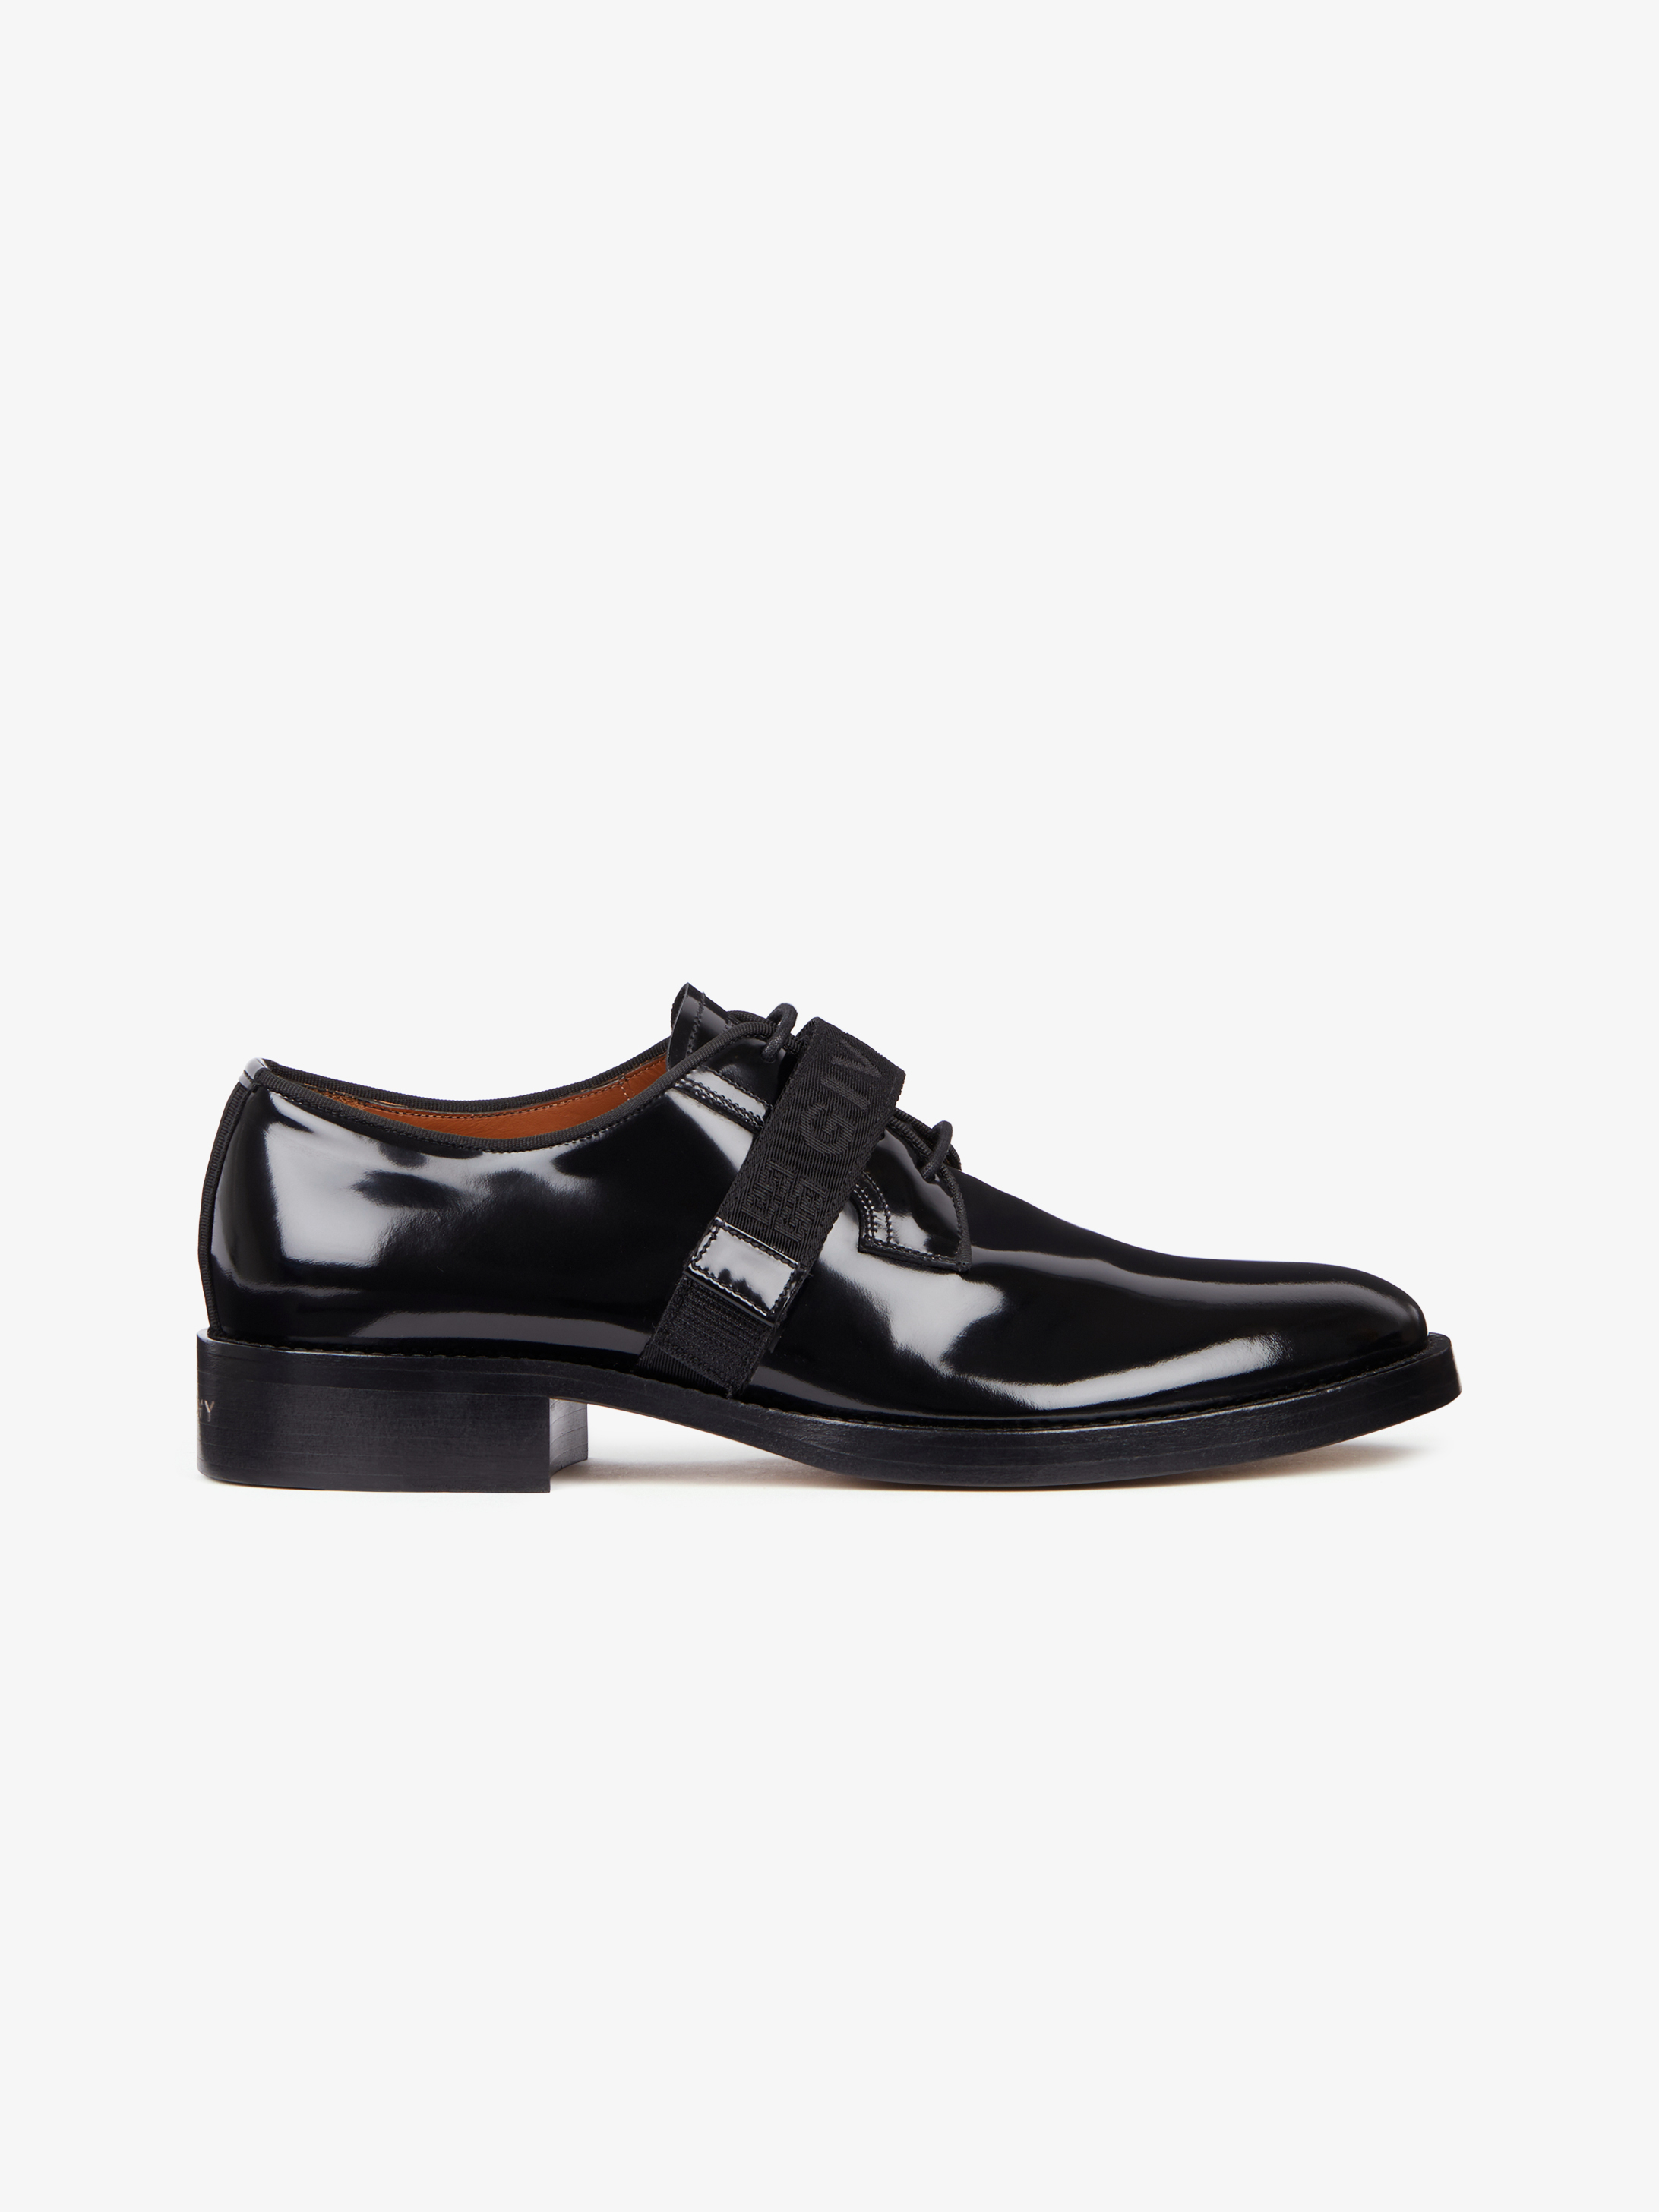 GIVENCHY 4G webbing derby shoes